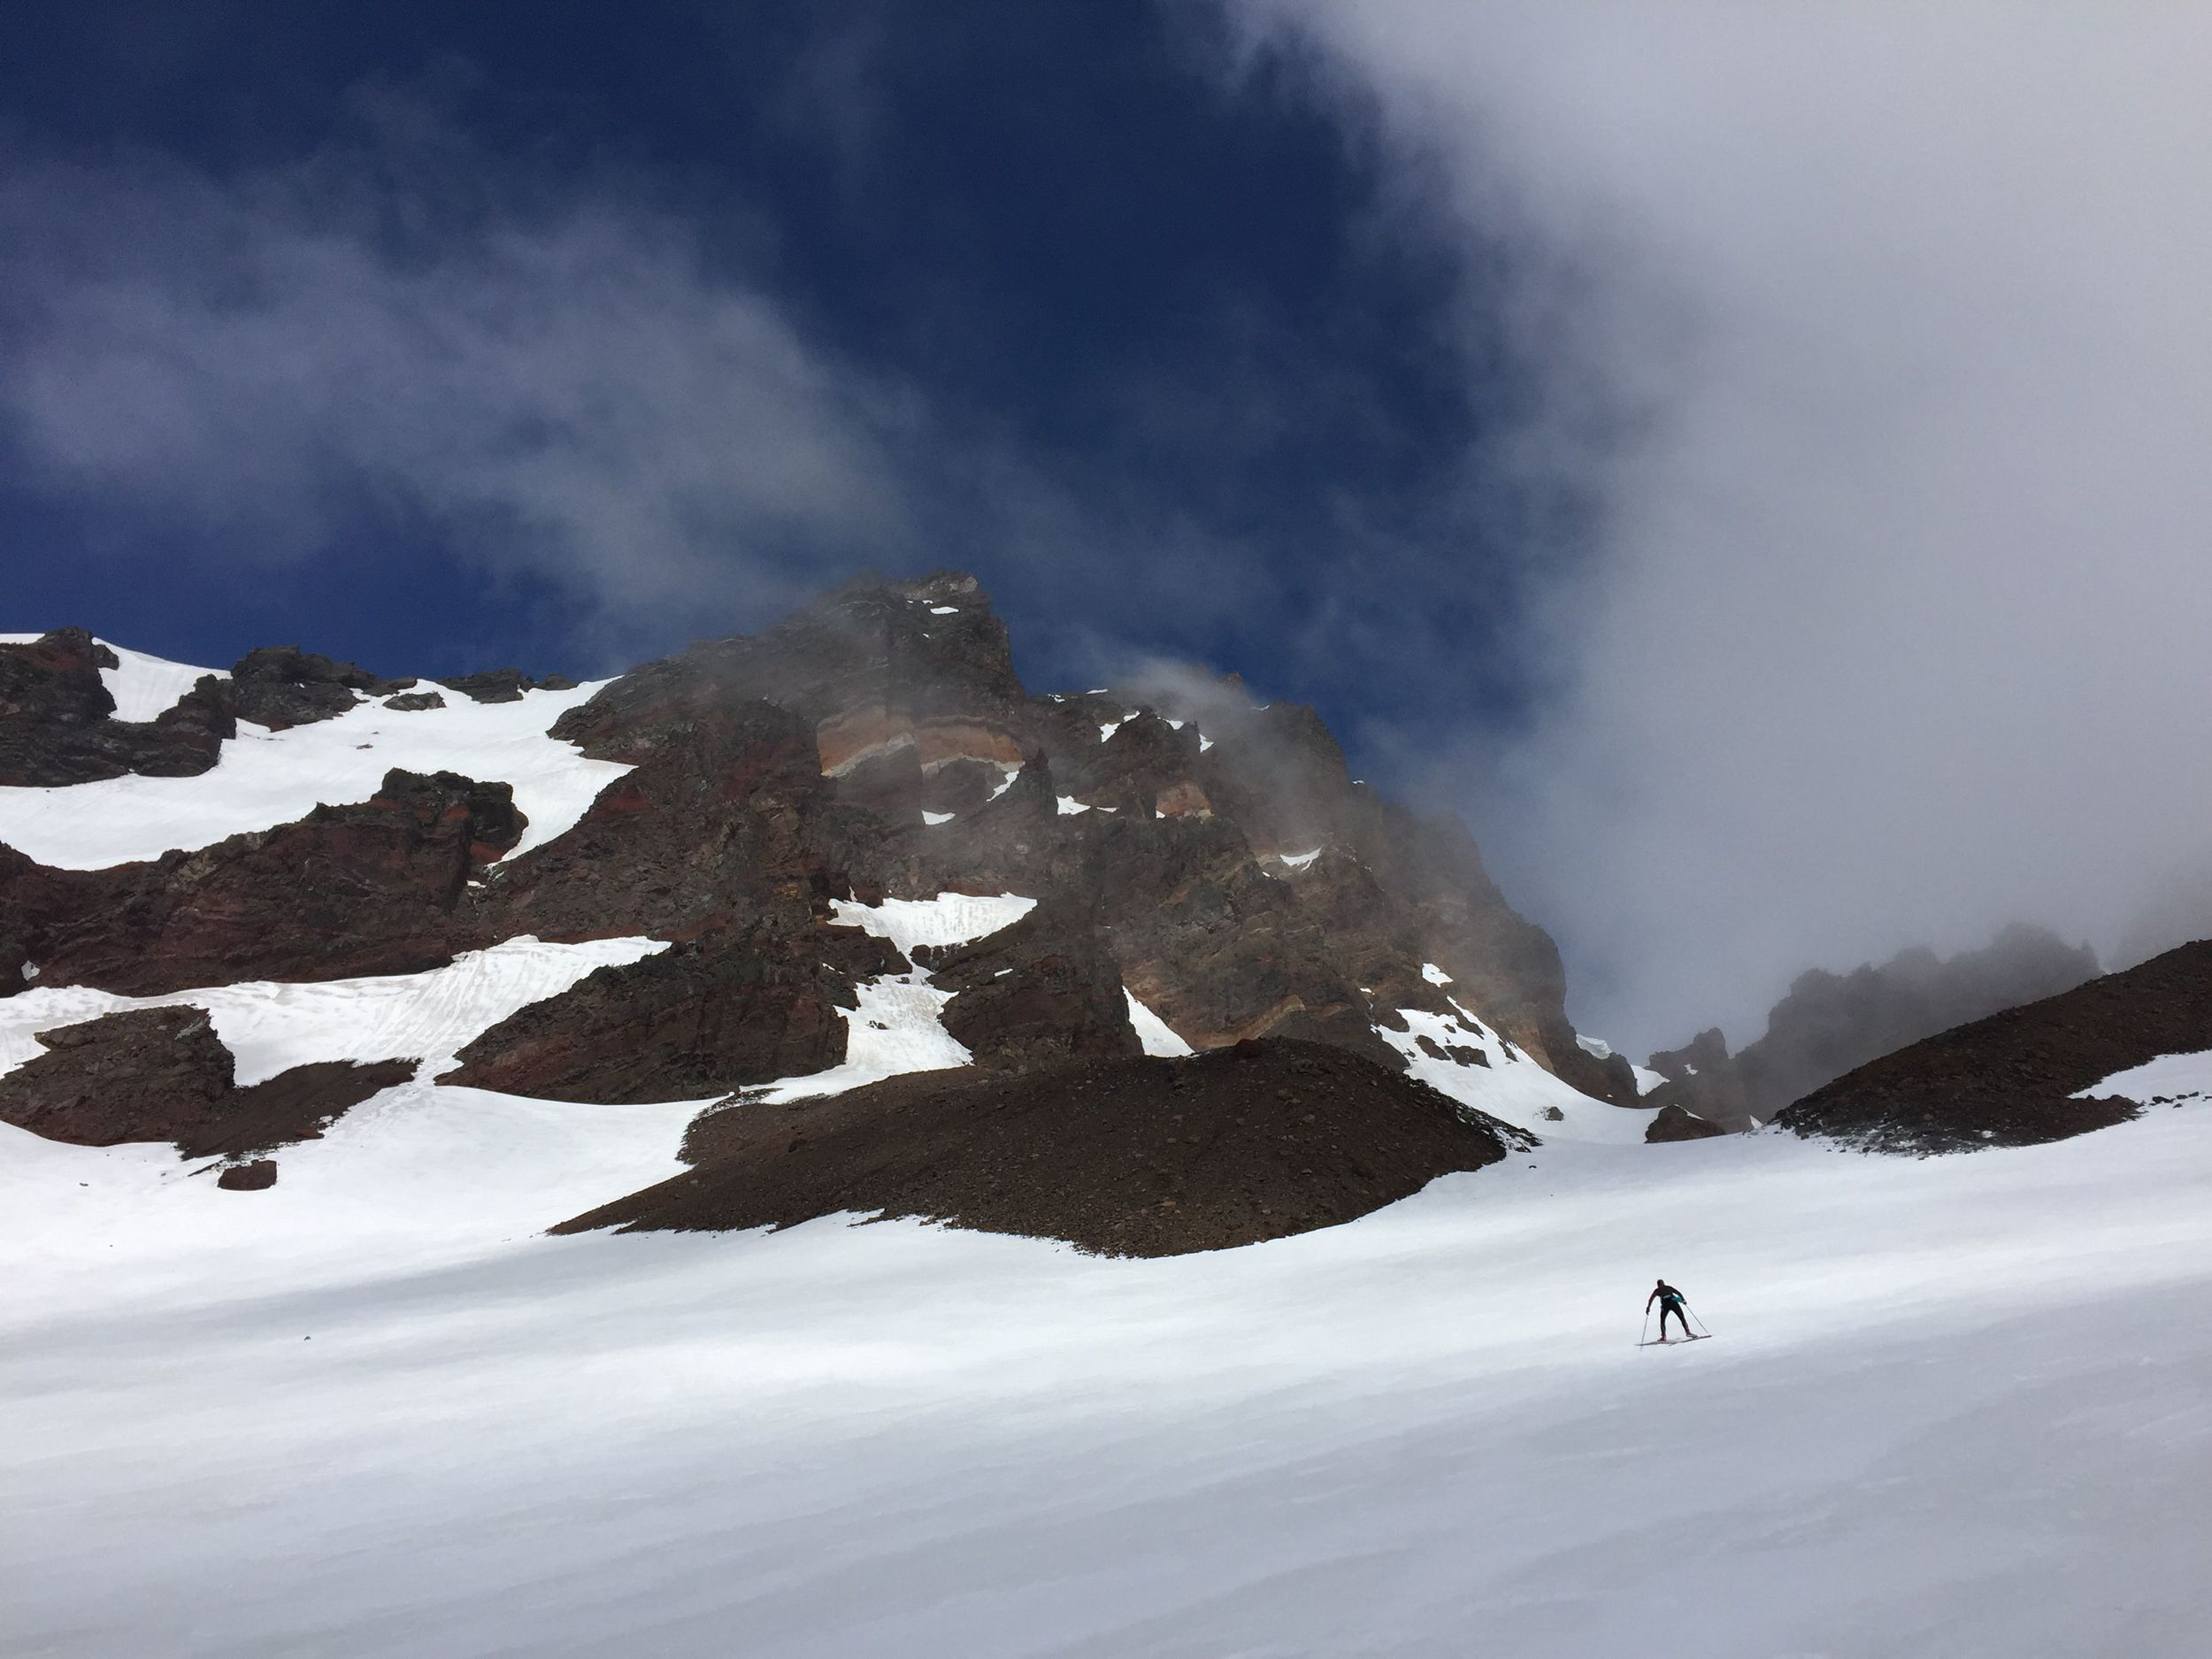 There is some pretty beautiful scenery around Mt. Bachelor! Pictured here, Rosie headed up the mountain.